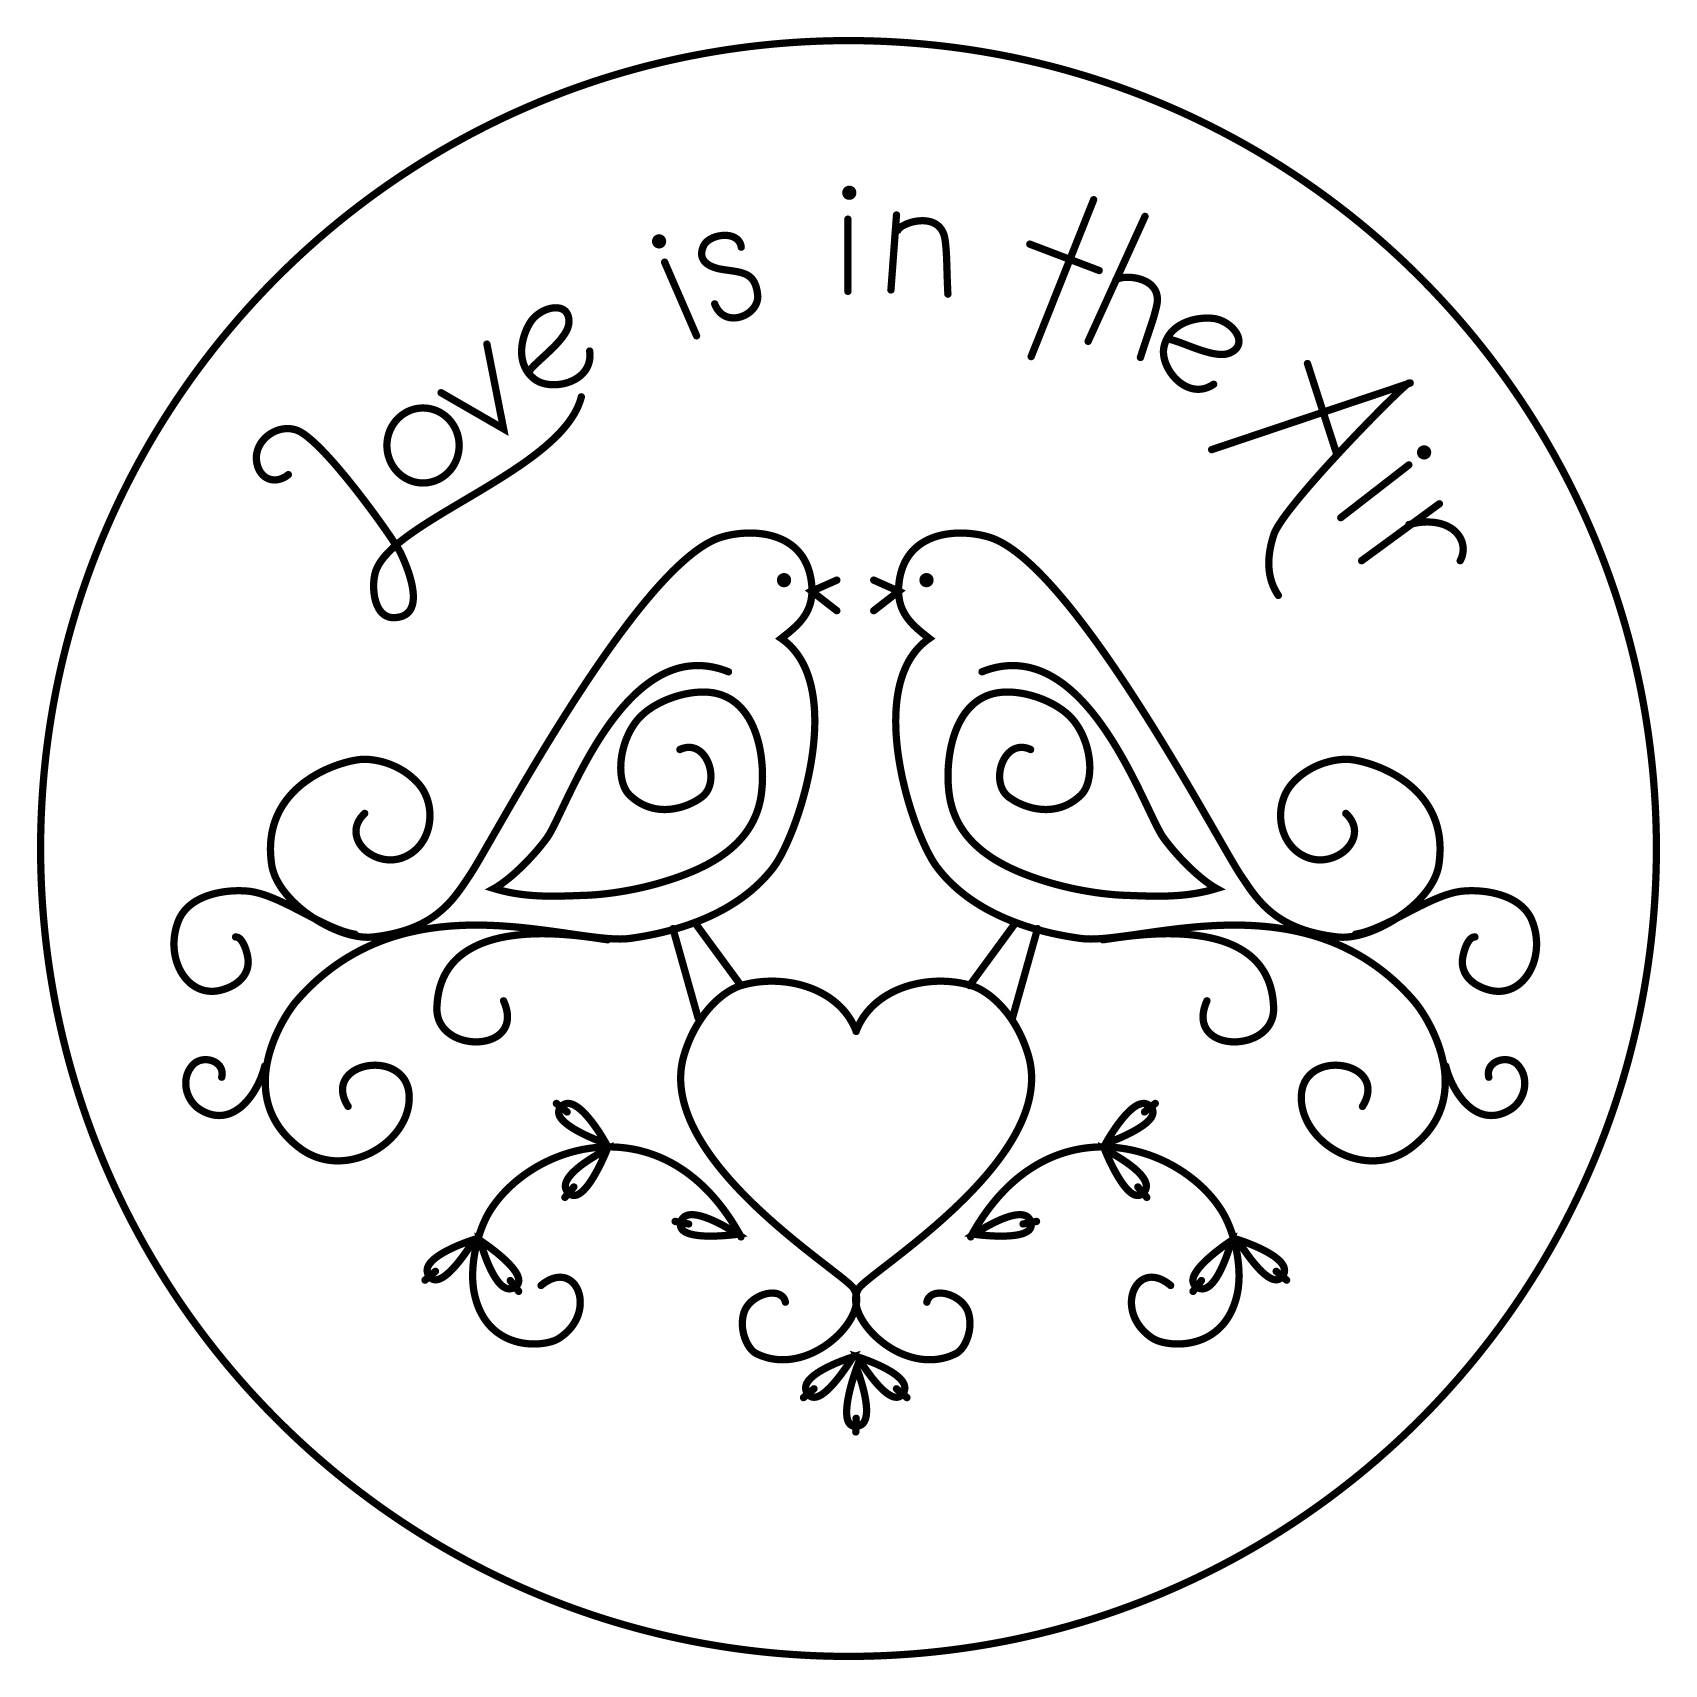 10 free embroidery patterns for beginners embroidery designs free 10 free embroidery patterns for beginners dt1010fo